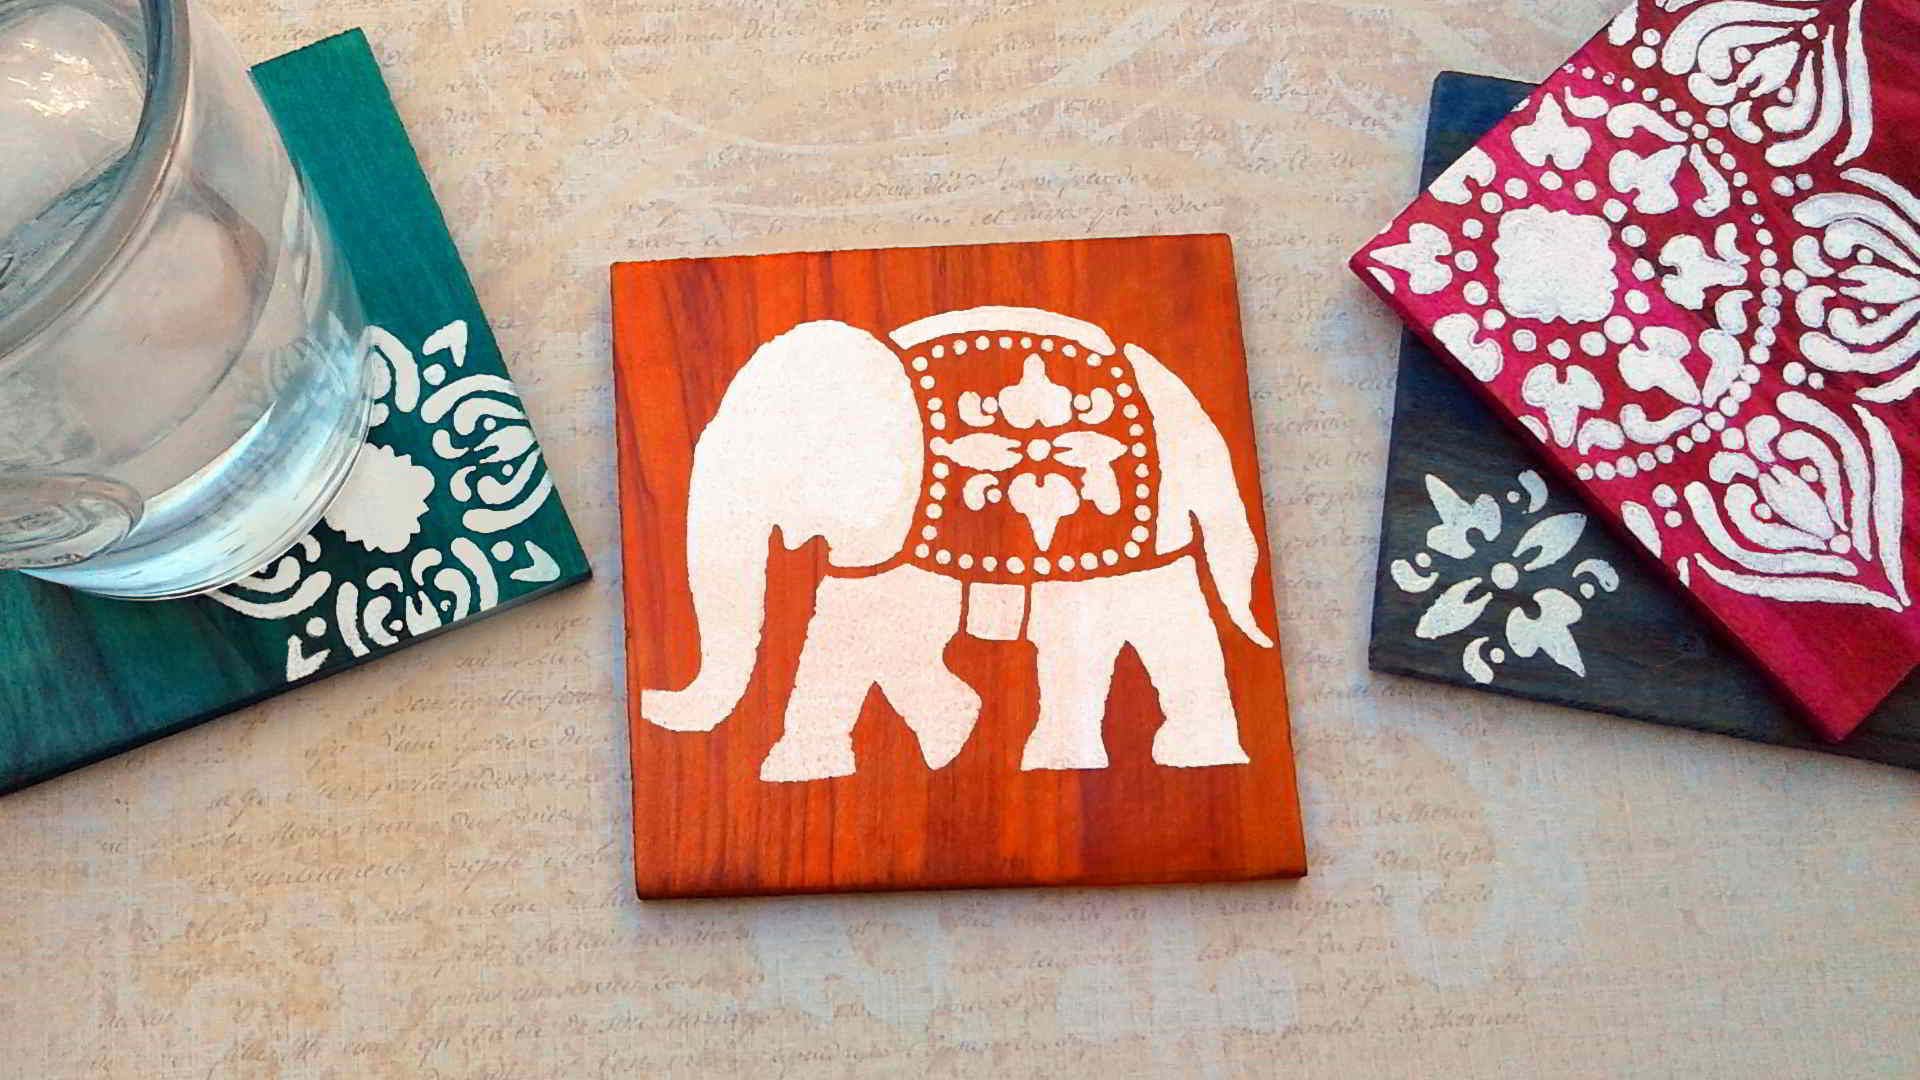 Diy Coasters Dyed And Stenciled Coasters Coasters